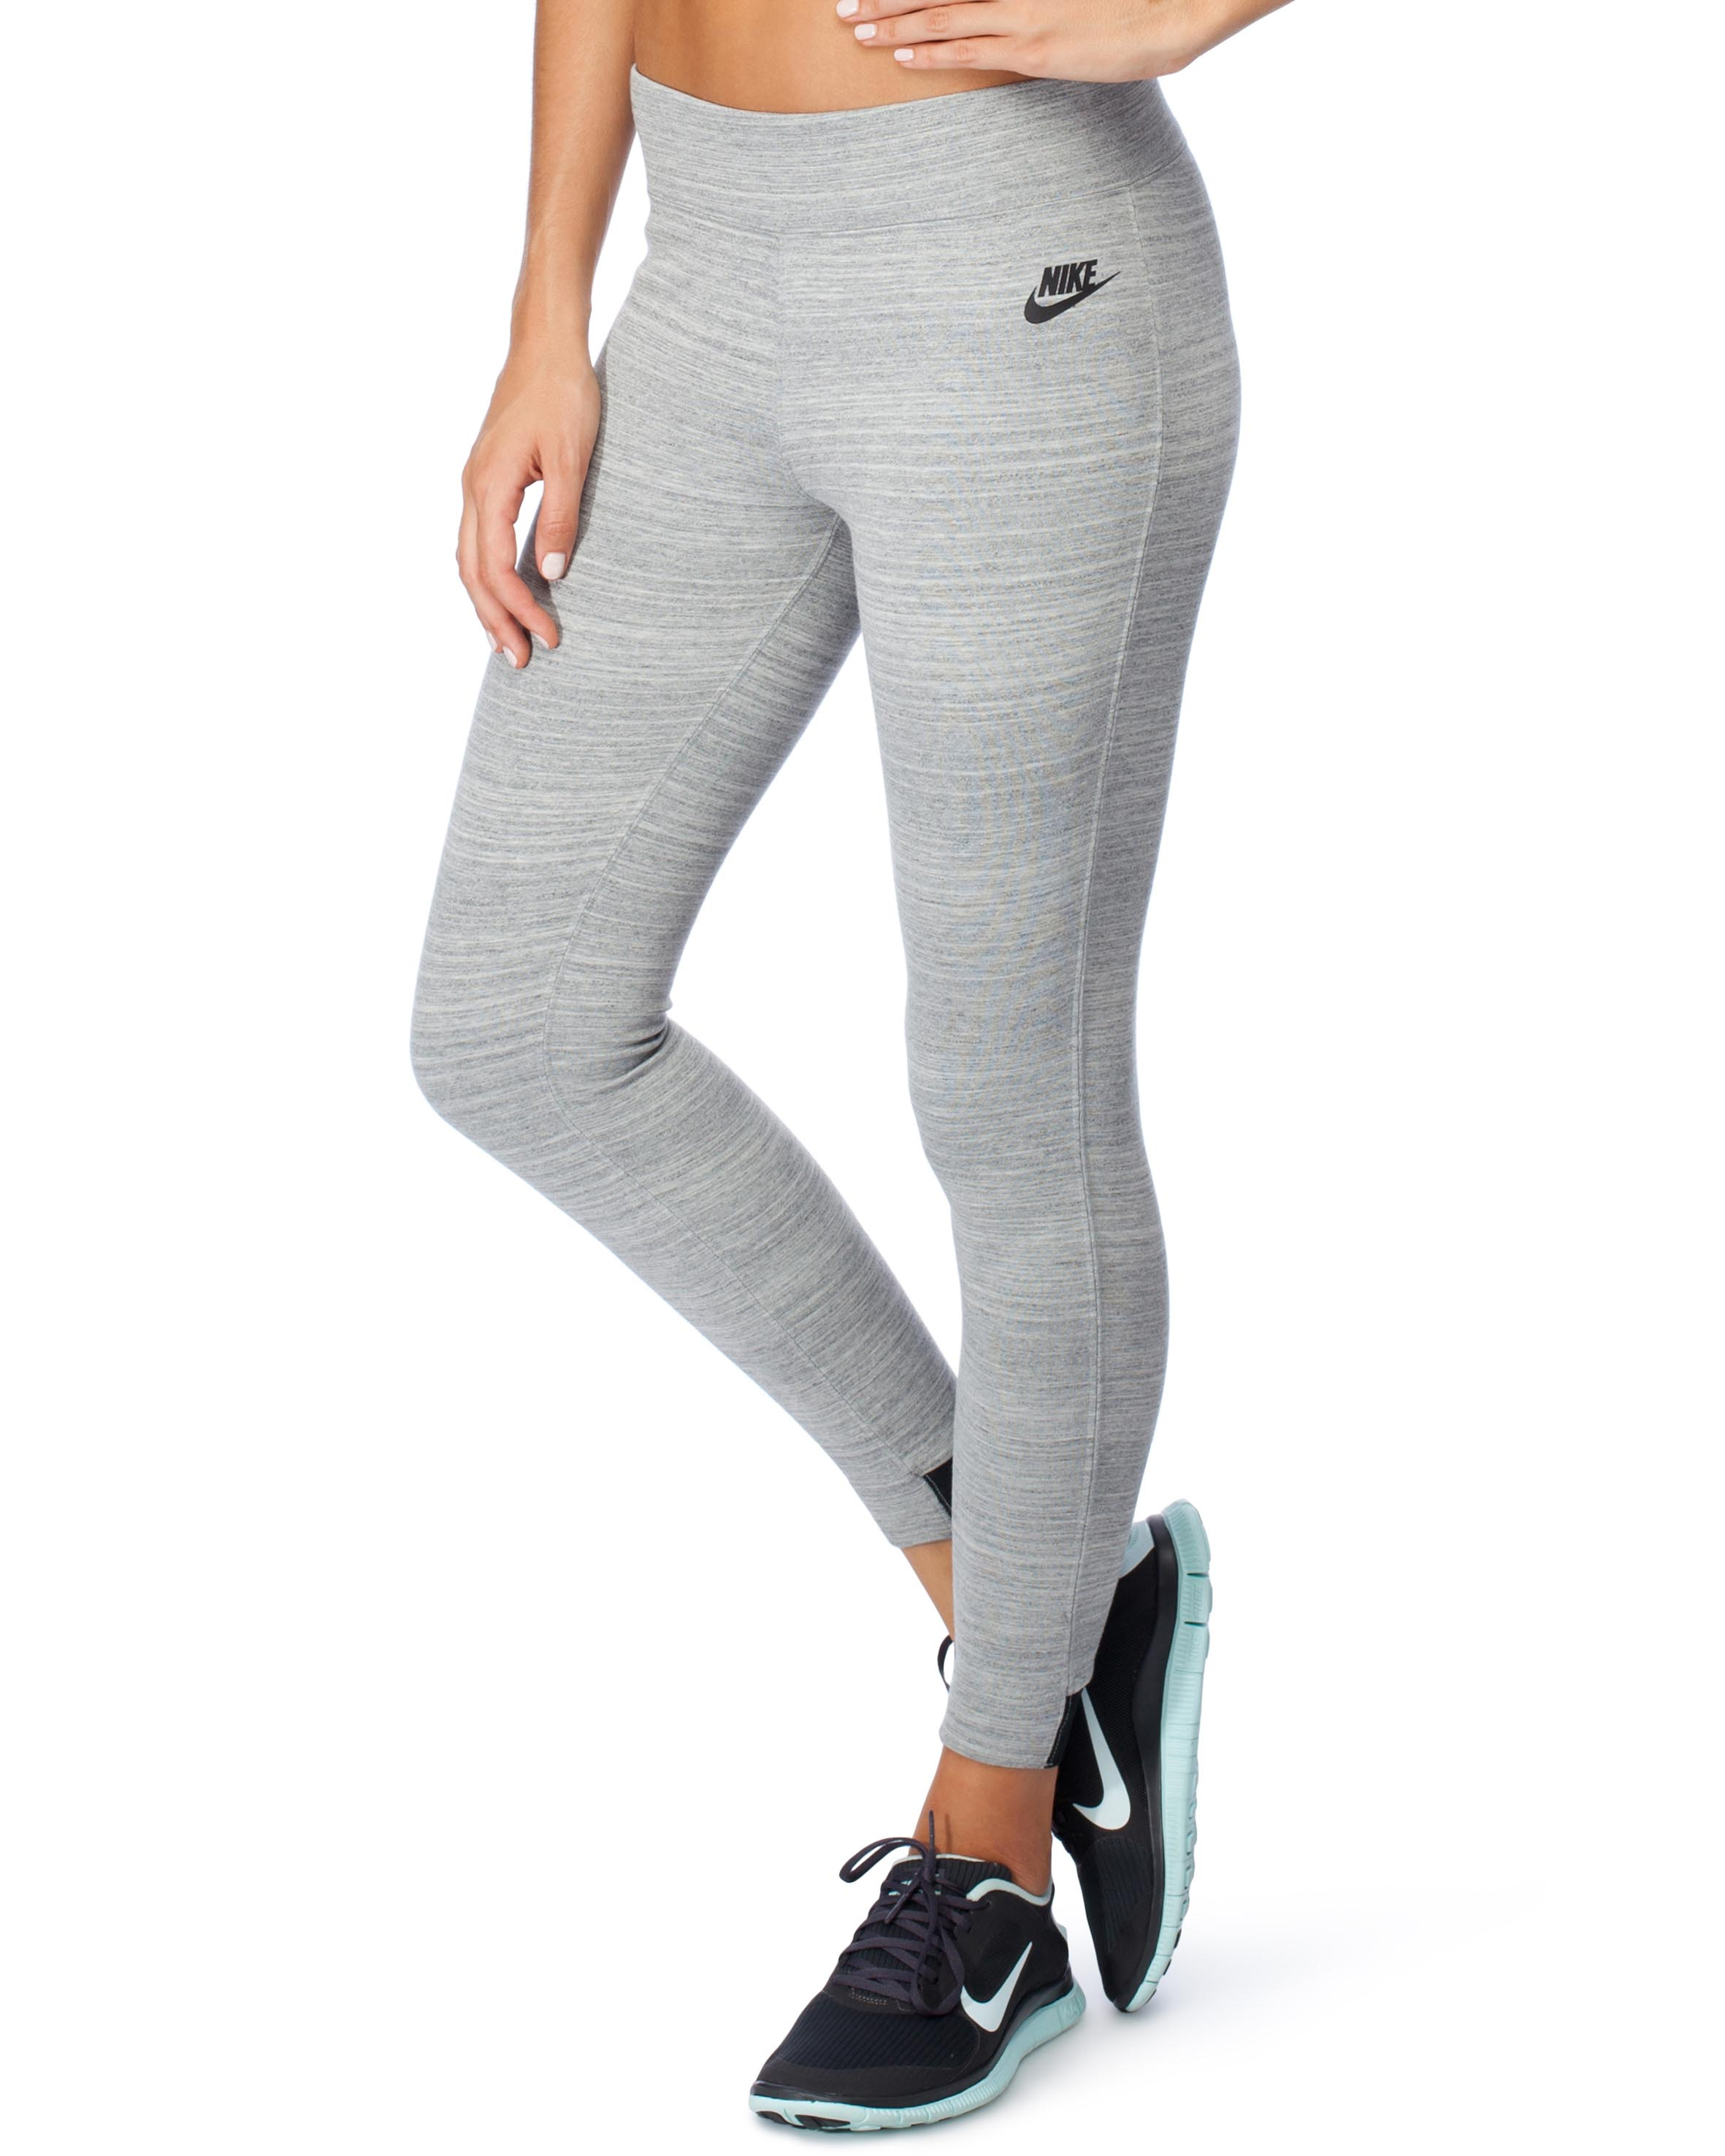 Simple NikeTechFleeceWomensPants555417_063_A_PREM